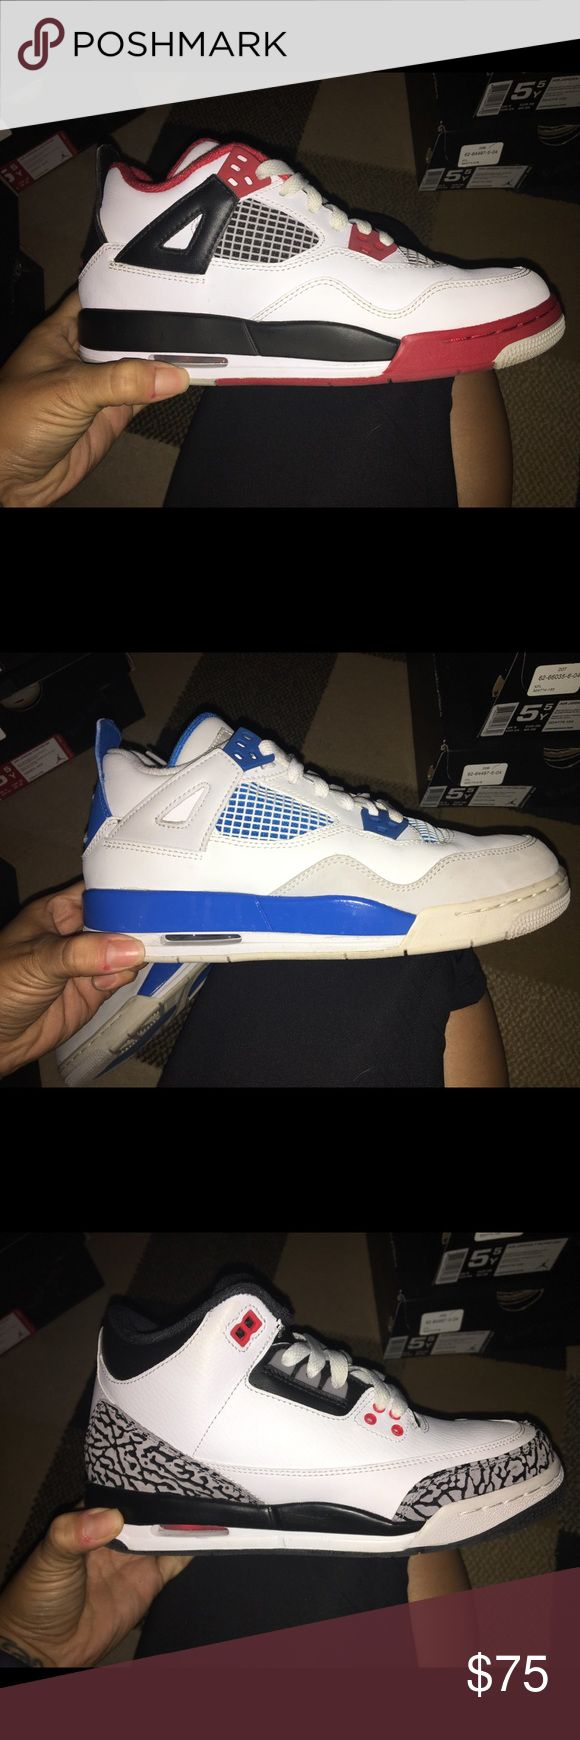 Authentic Jordan Sneakers 5.5Y Size 5.5Y - size 7 womens - with original box - like new - $75 each - additional pictures provided upon request. Jordan Shoes Athletic Shoes